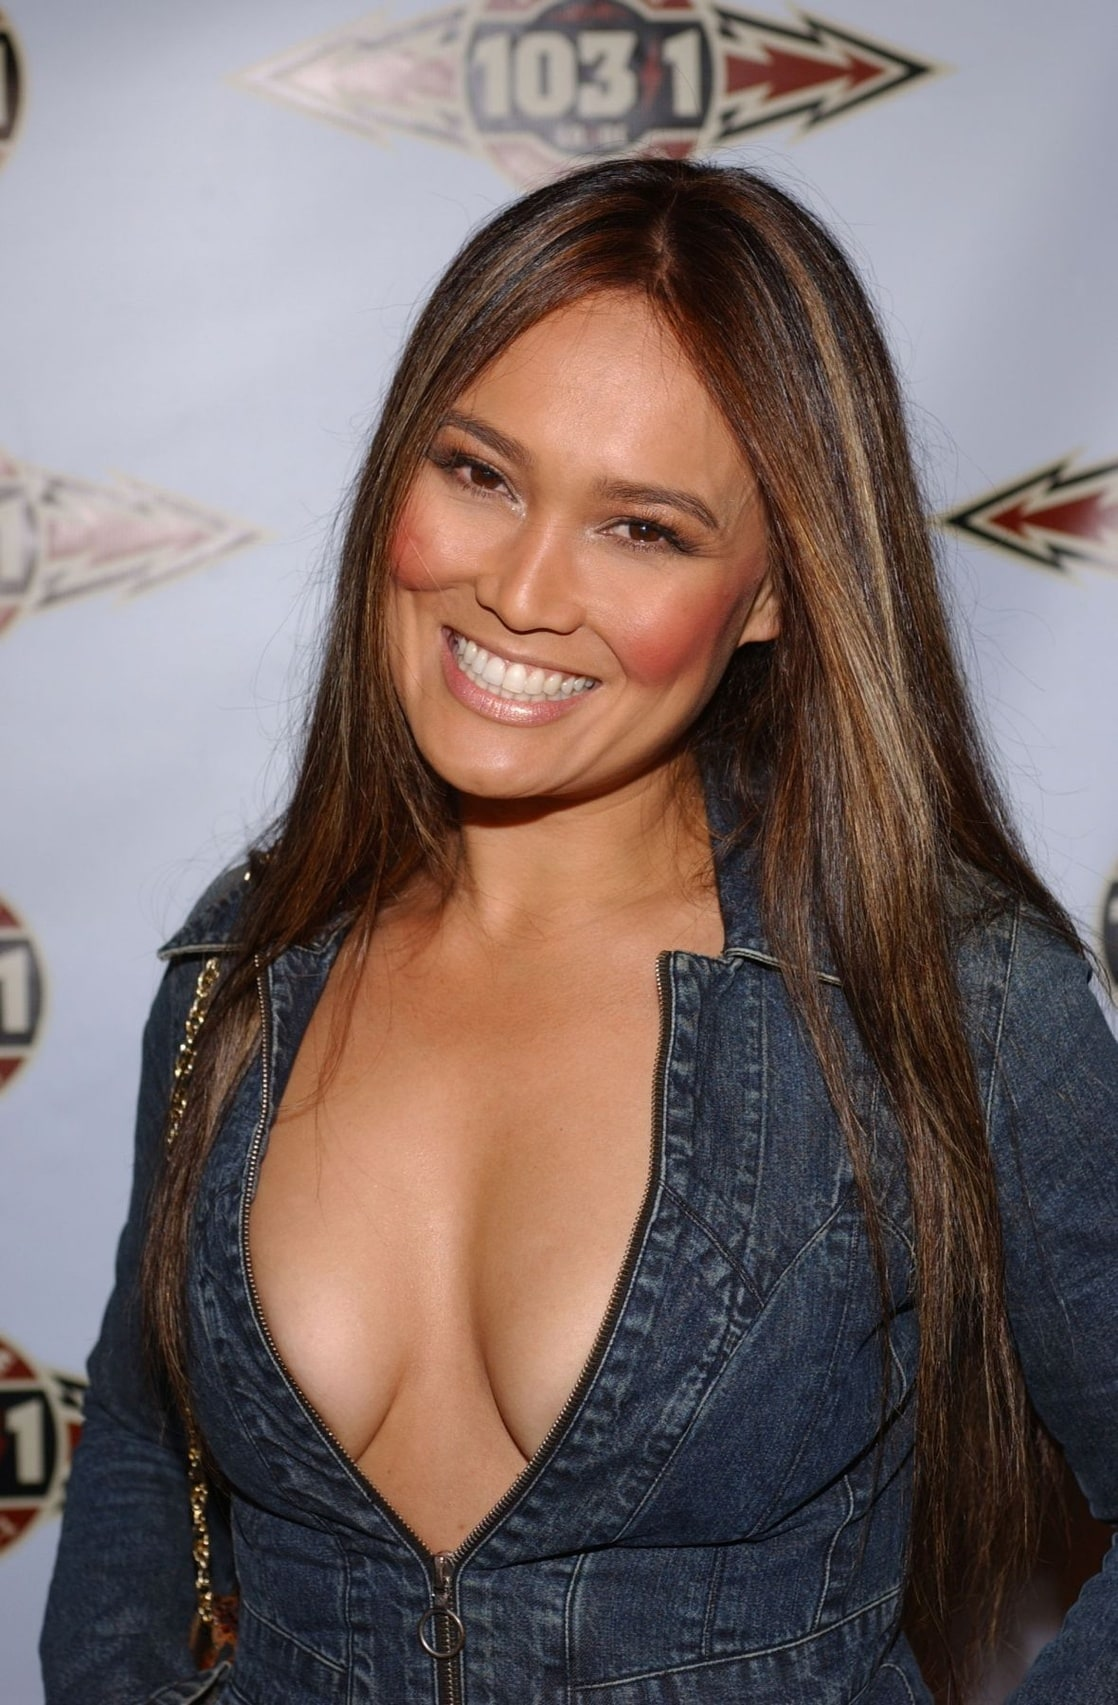 Hot Tia Carrere nudes (11 photo), Topless, Cleavage, Instagram, cameltoe 2019